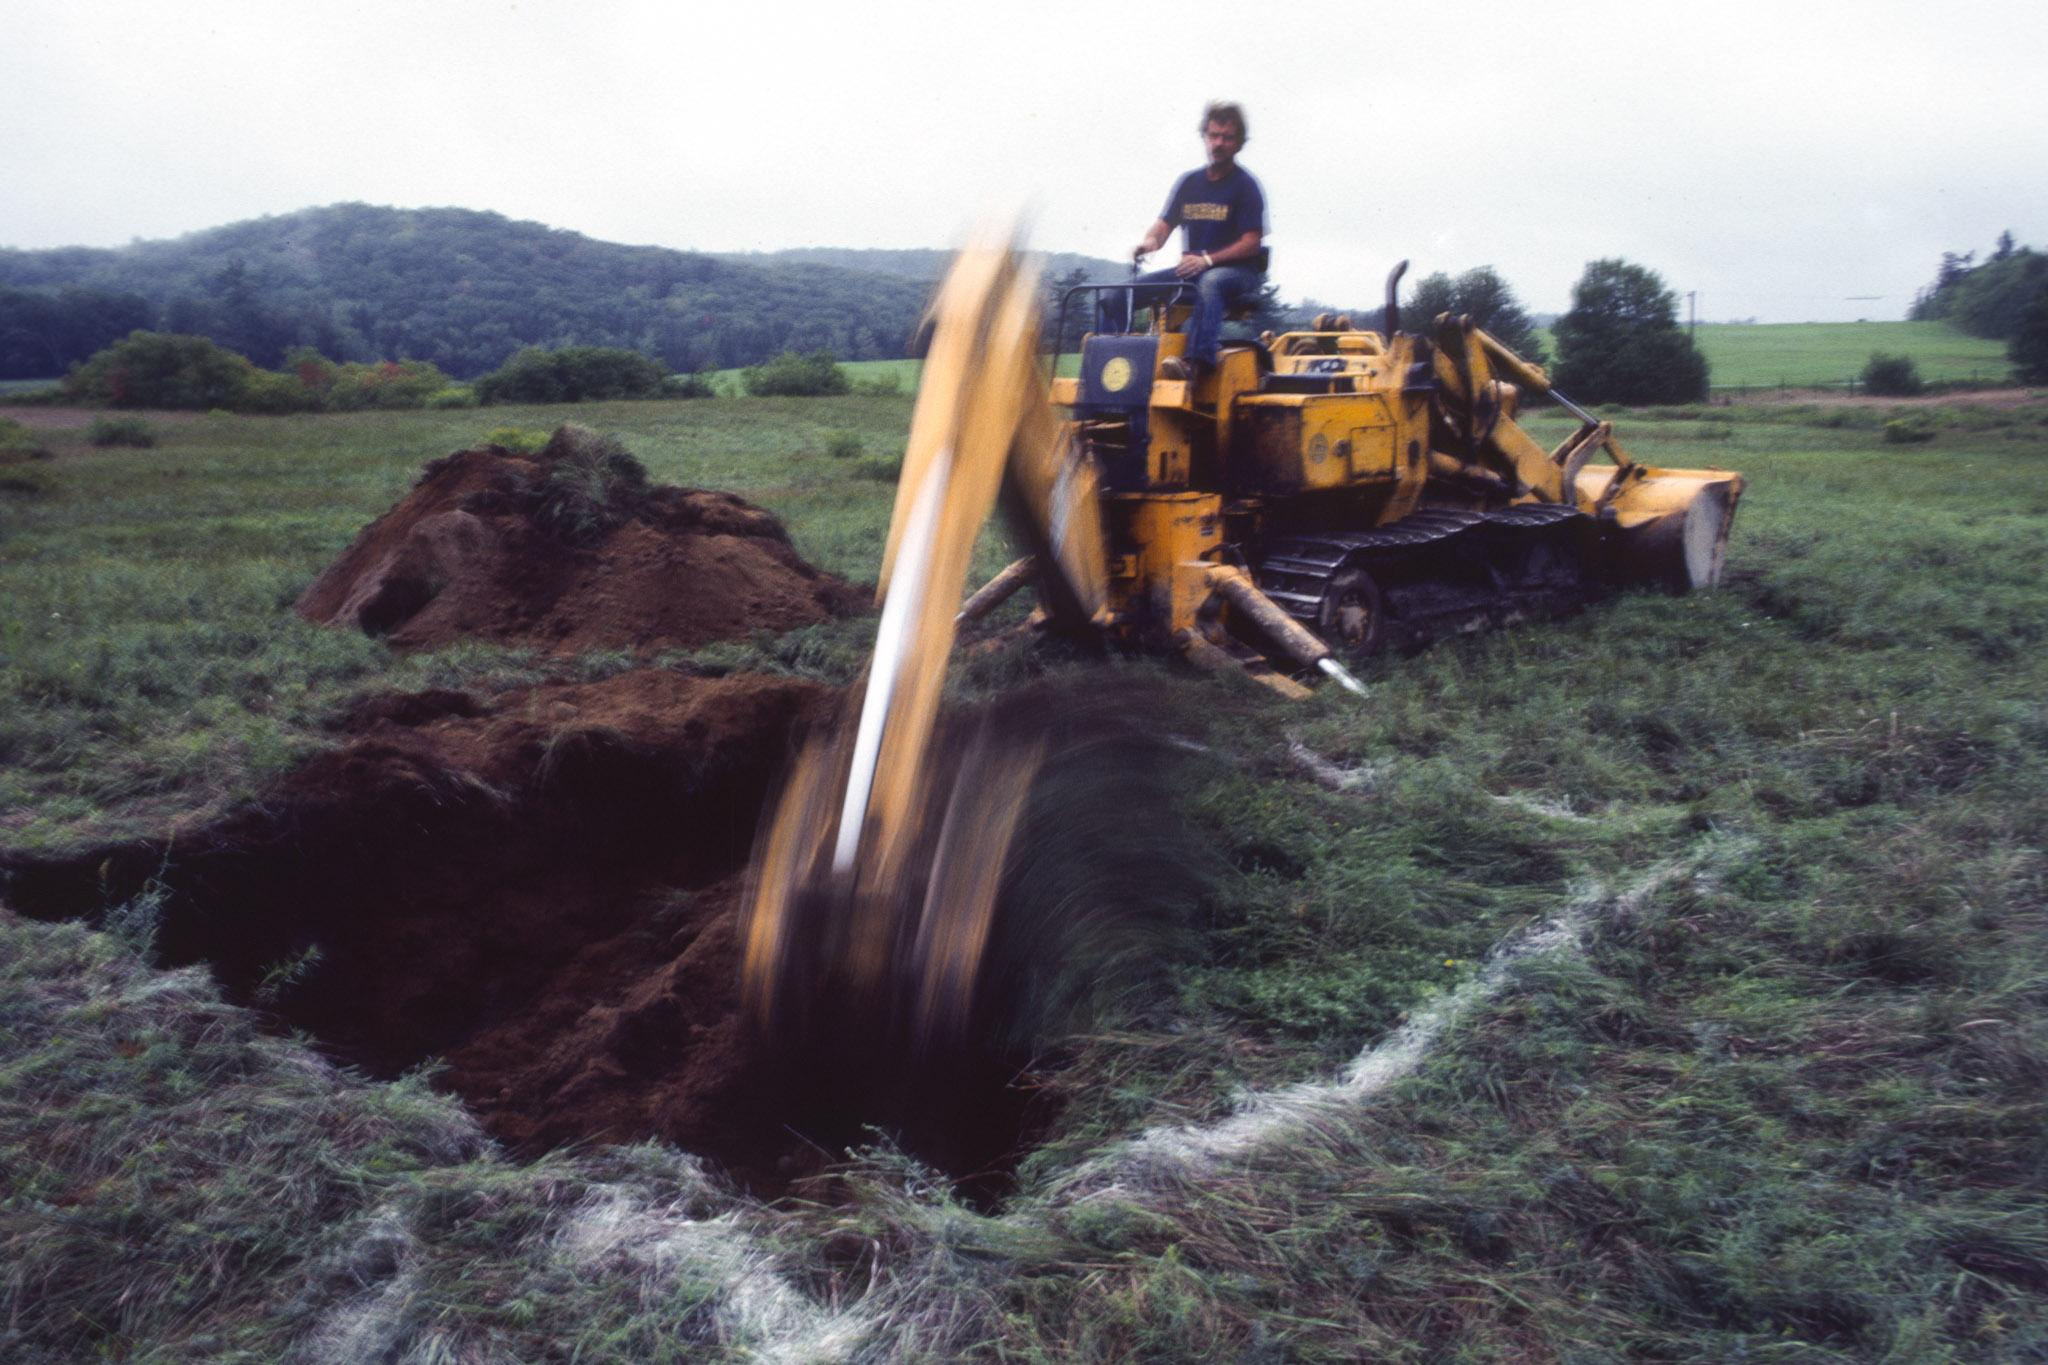 a large digging machine digs a square hole in a green grassy field